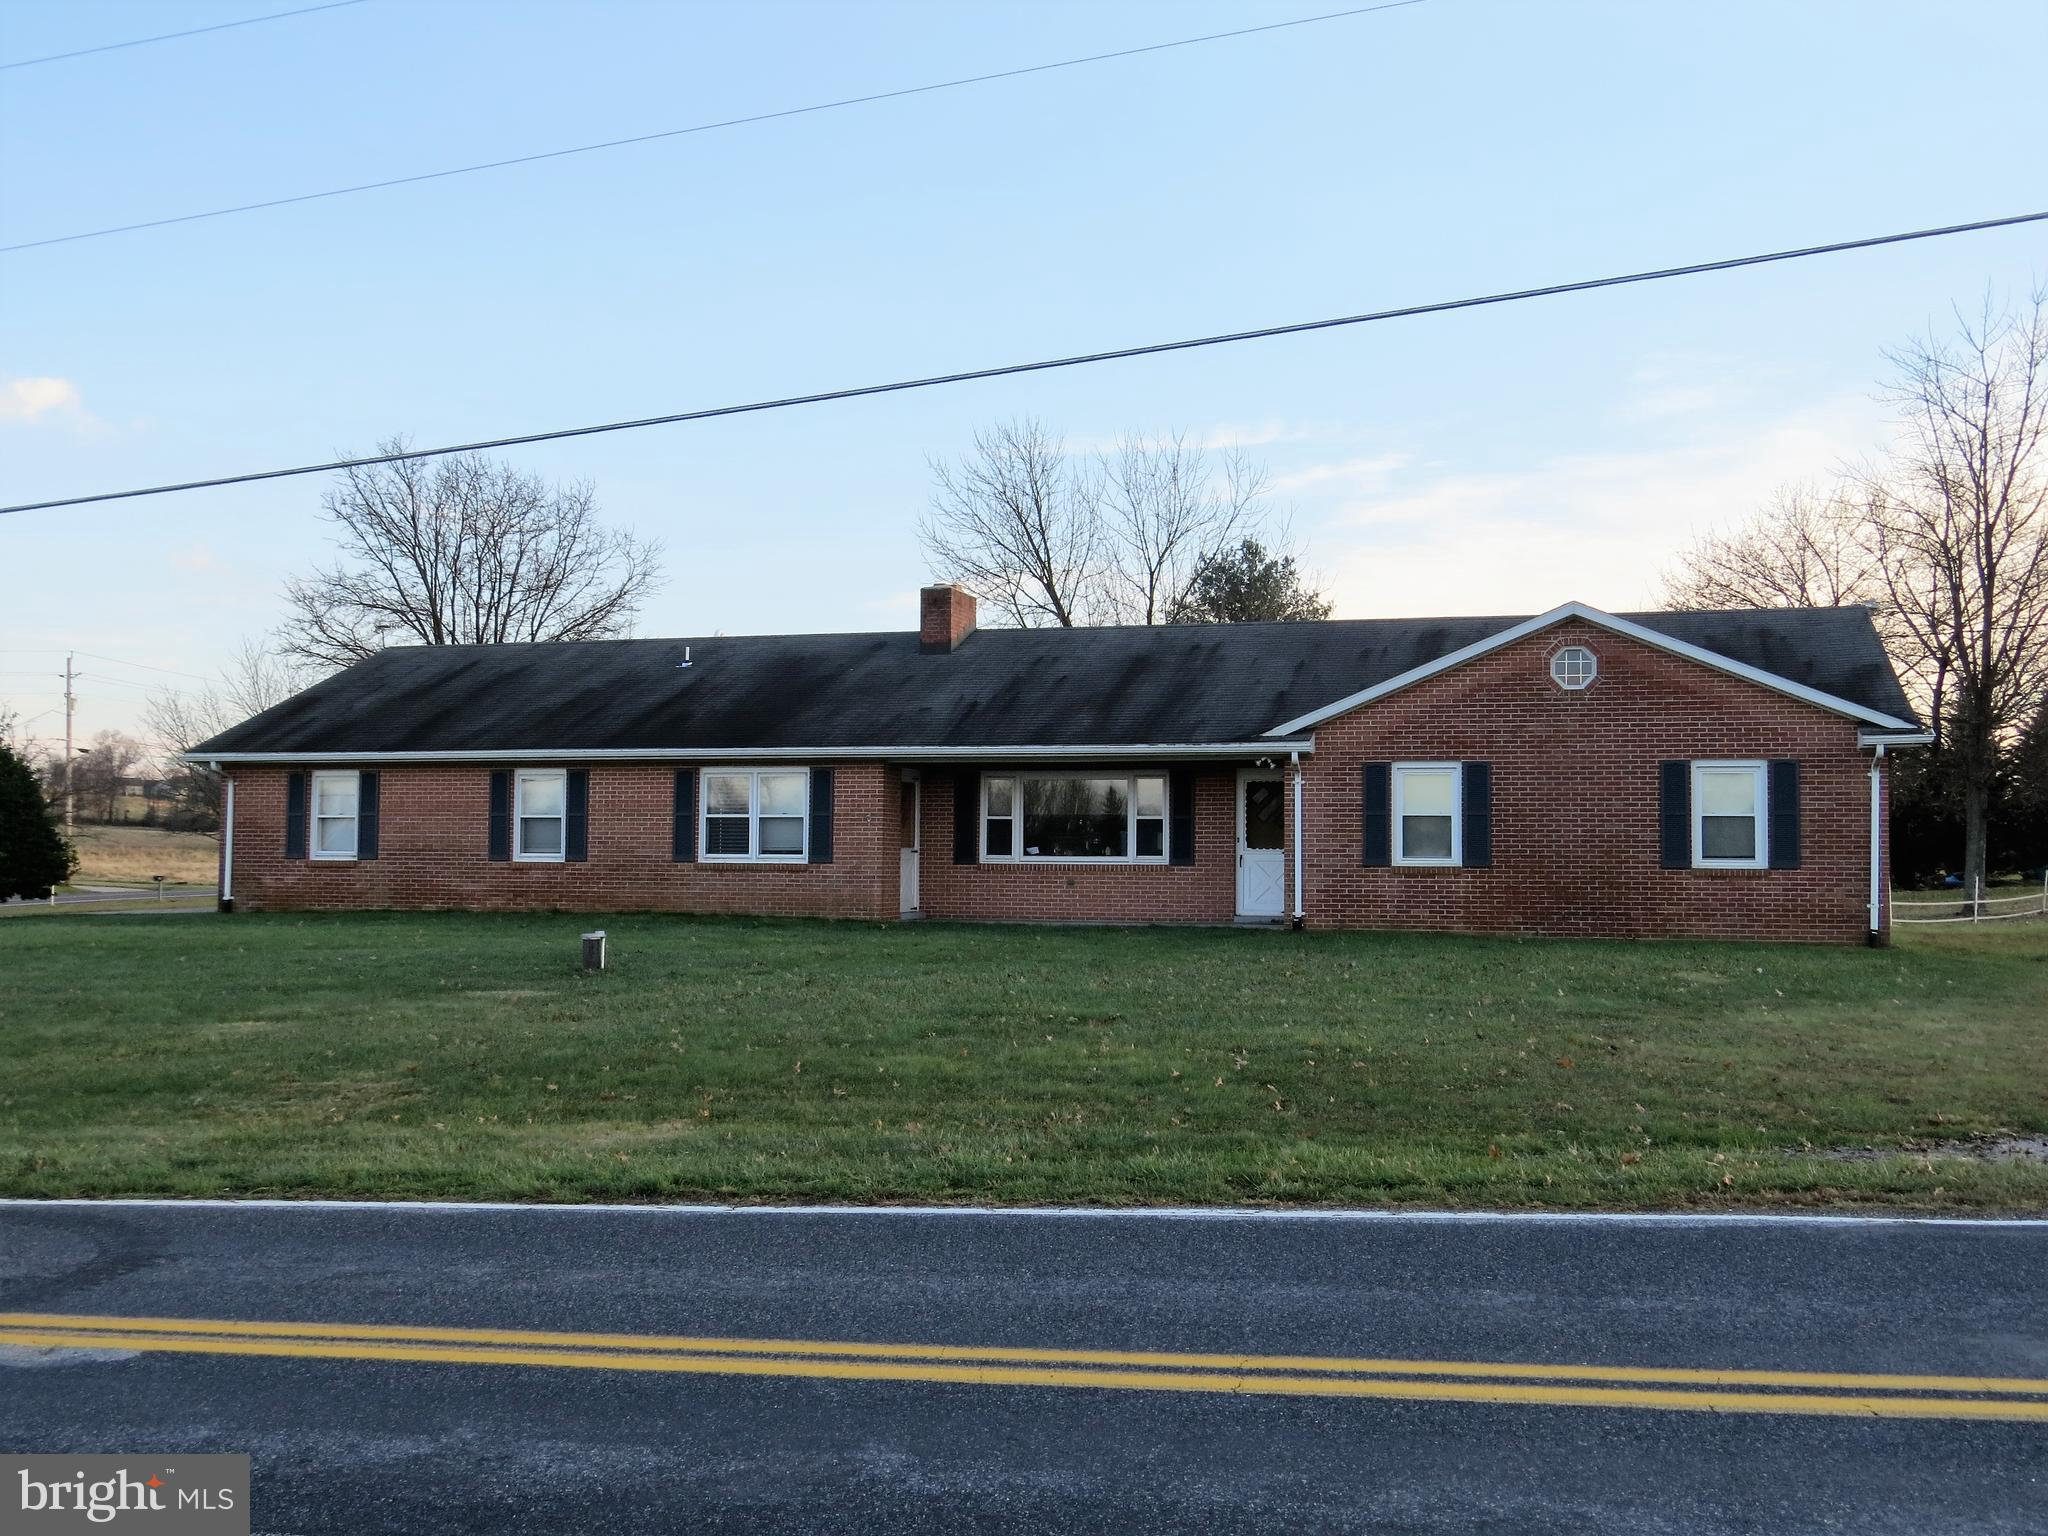 1695 FISH AND GAME ROAD, LITTLESTOWN, PA 17340